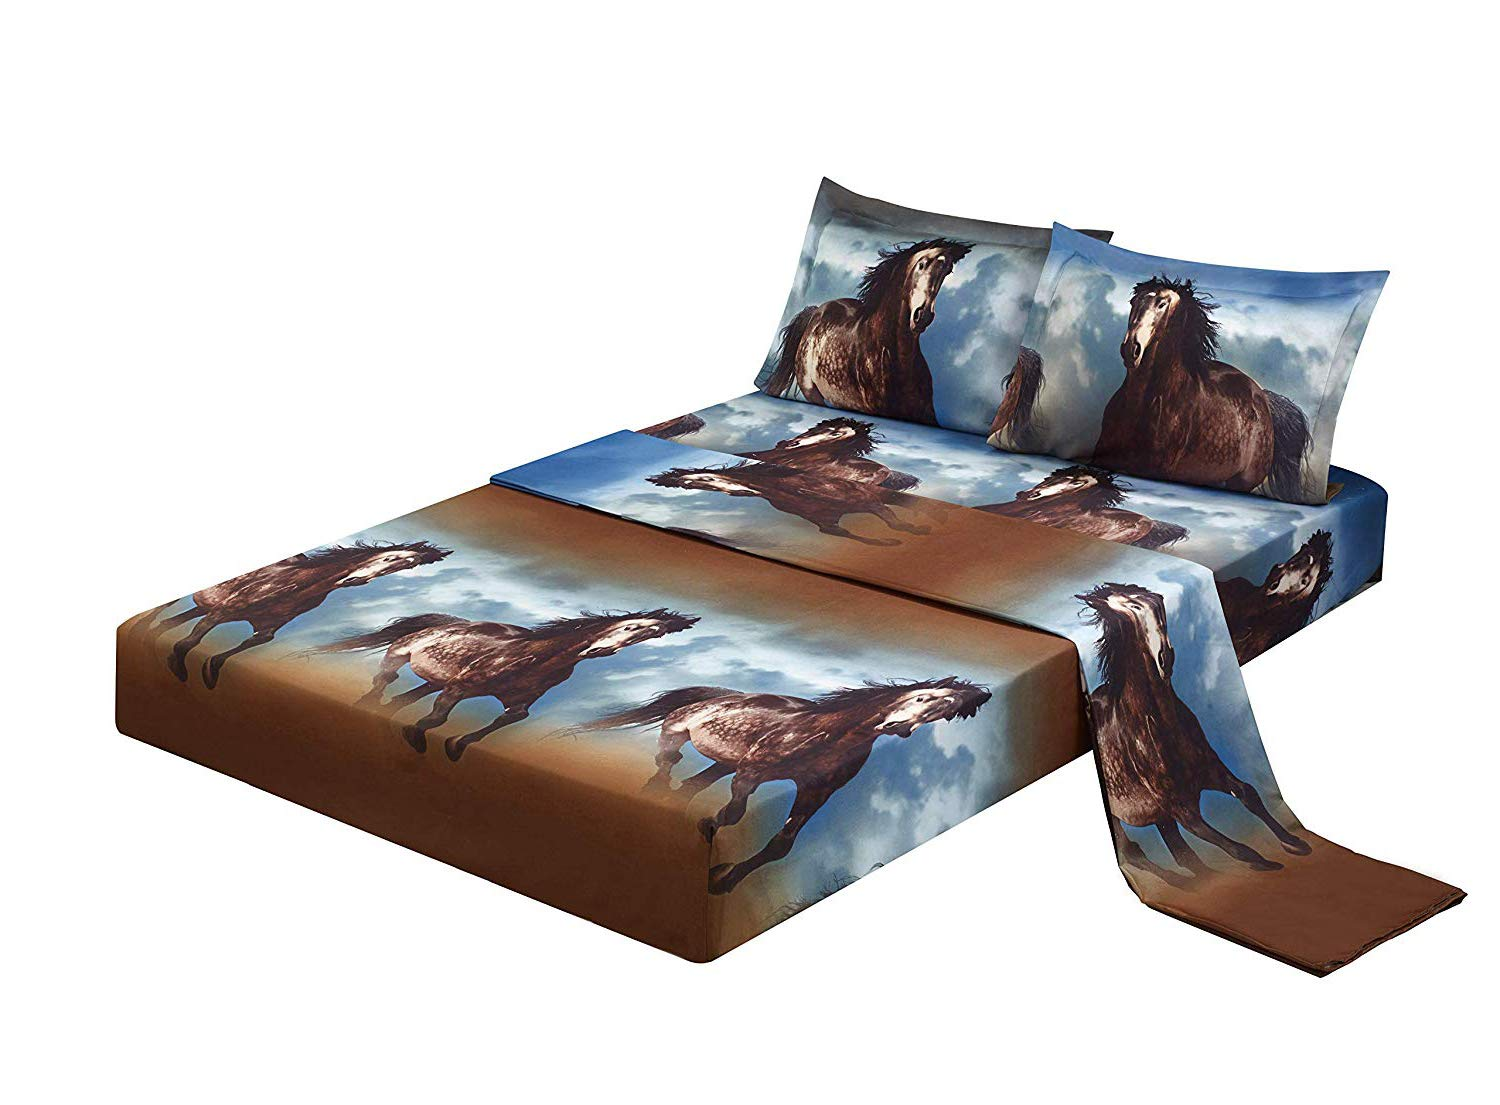 4 Piece Set Superior 3d Print Stylish and Vivid Pattern Deep Pocket Bed Sheet Set,Running Horse,Blue Sky and White Clouds (Queen, Running Horse)